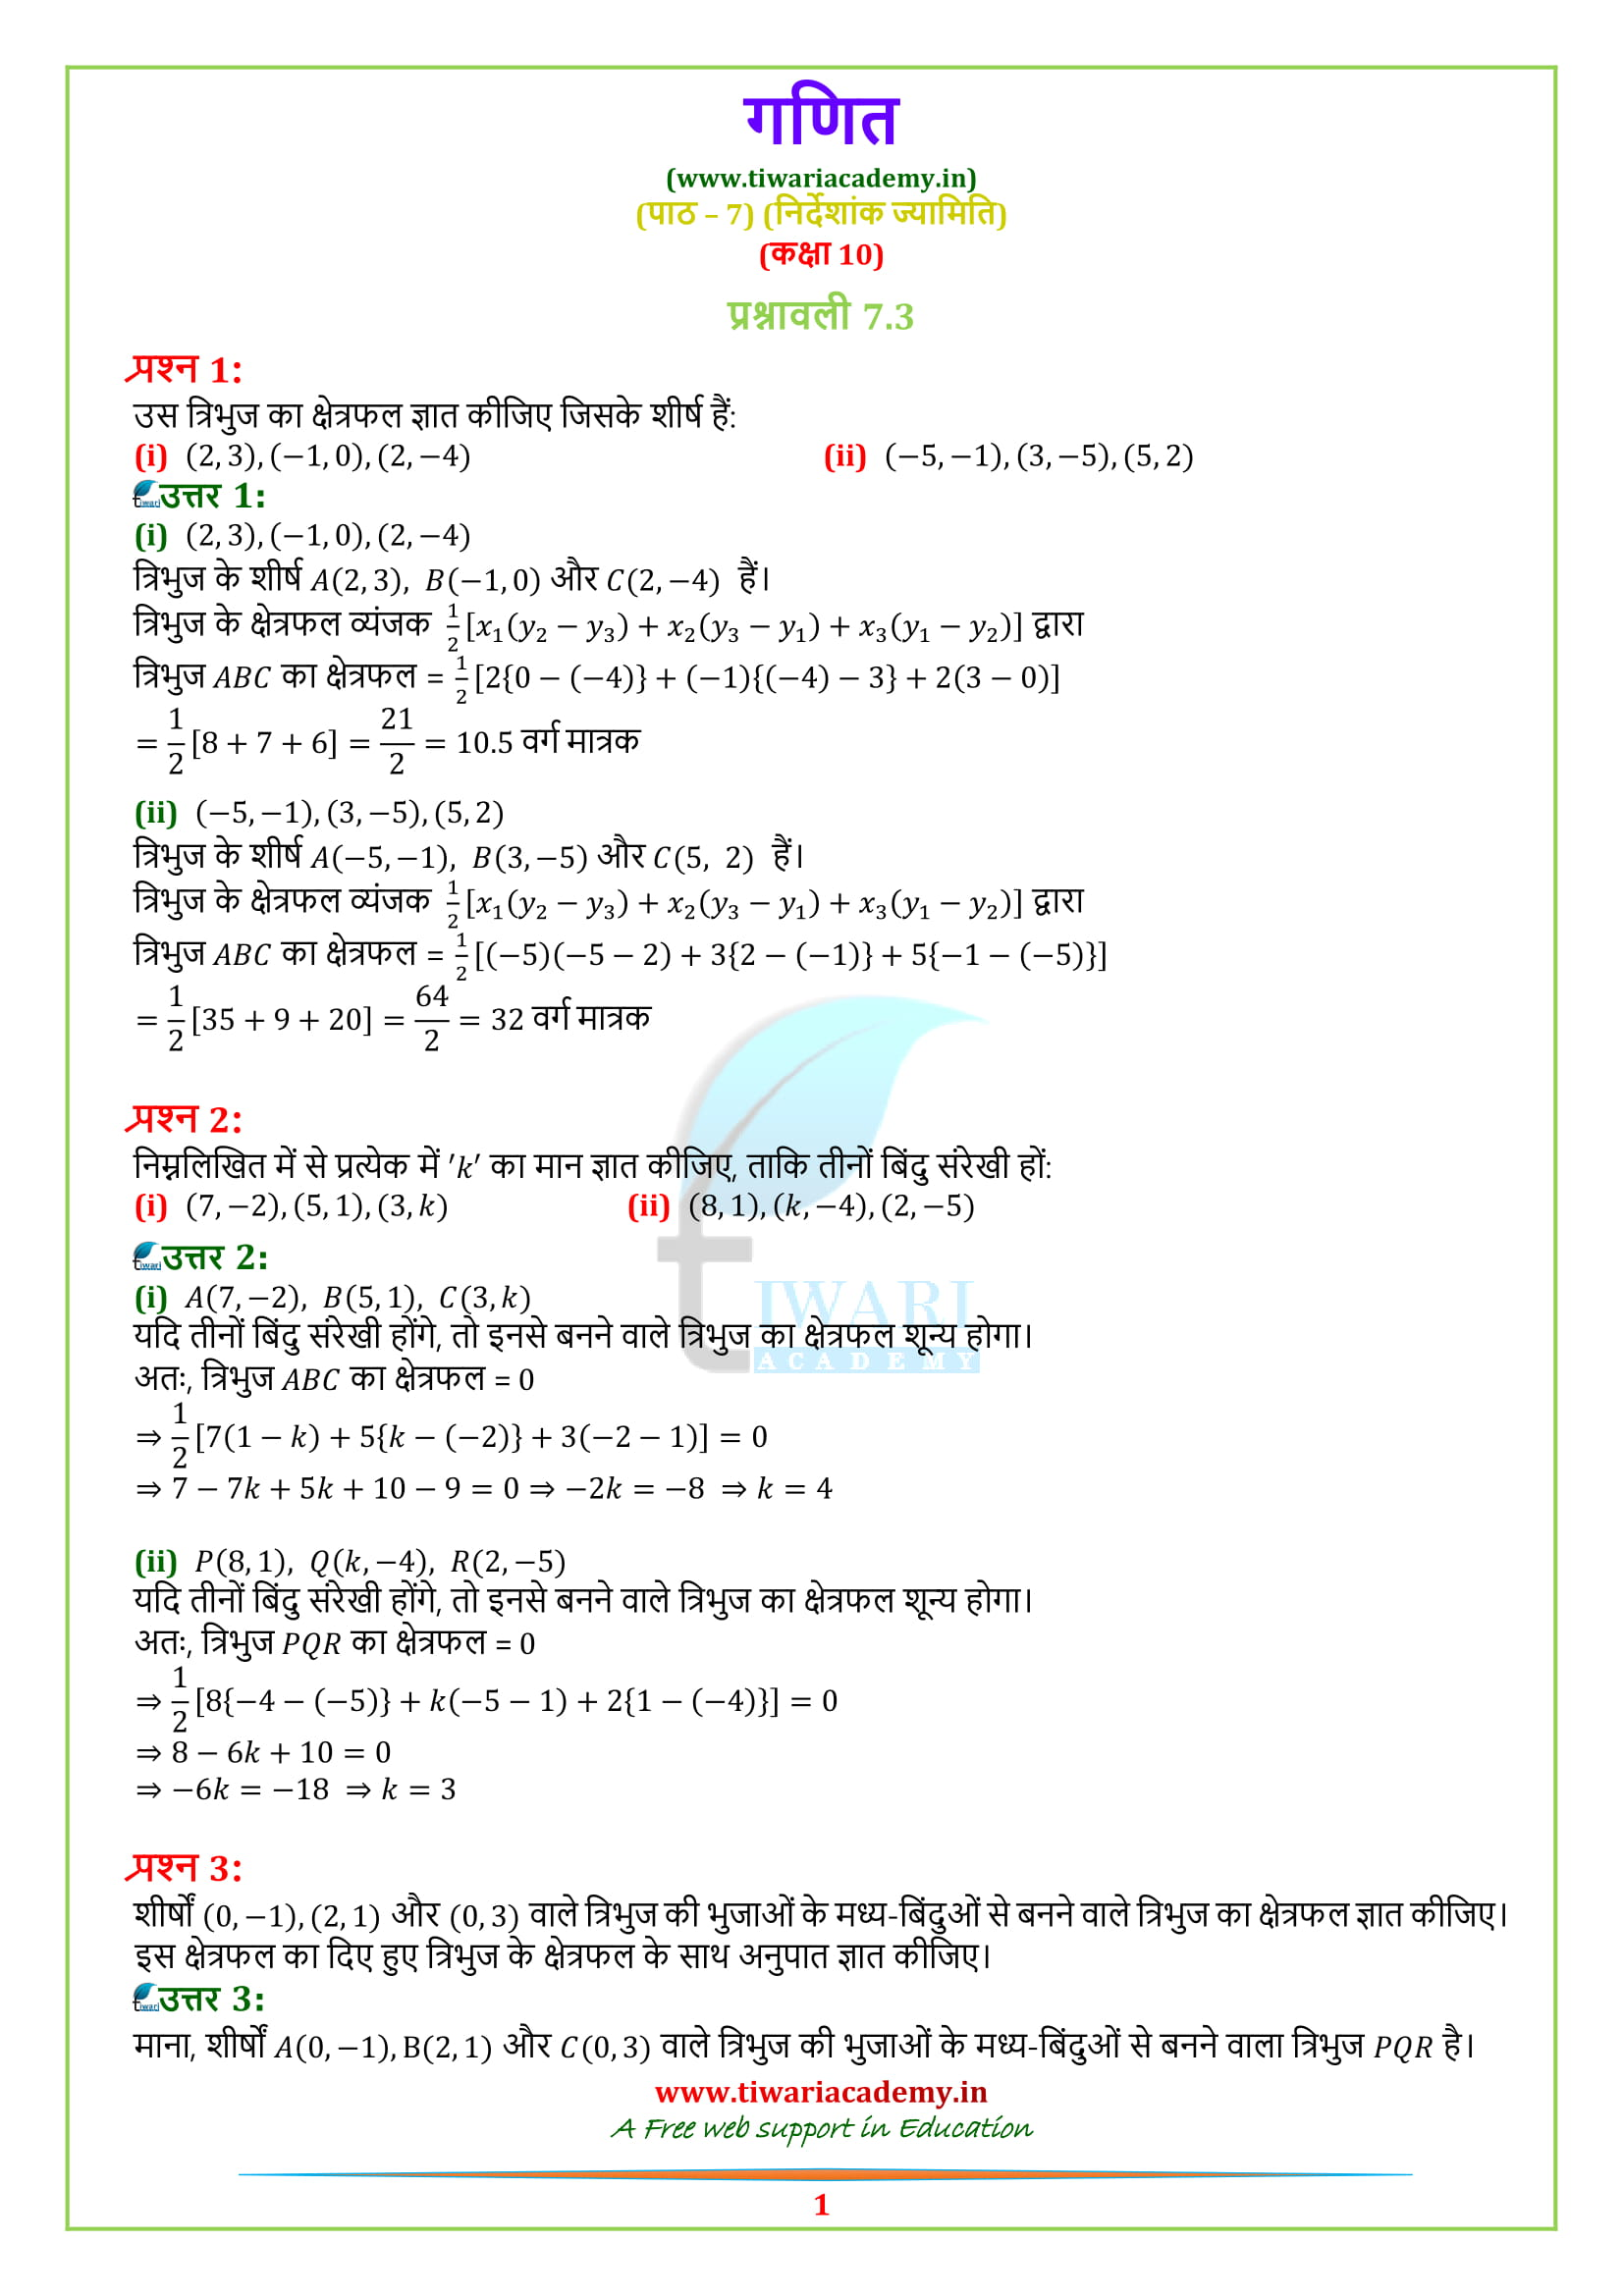 Class 10 Maths Exercise 7.3 in Hindi medium